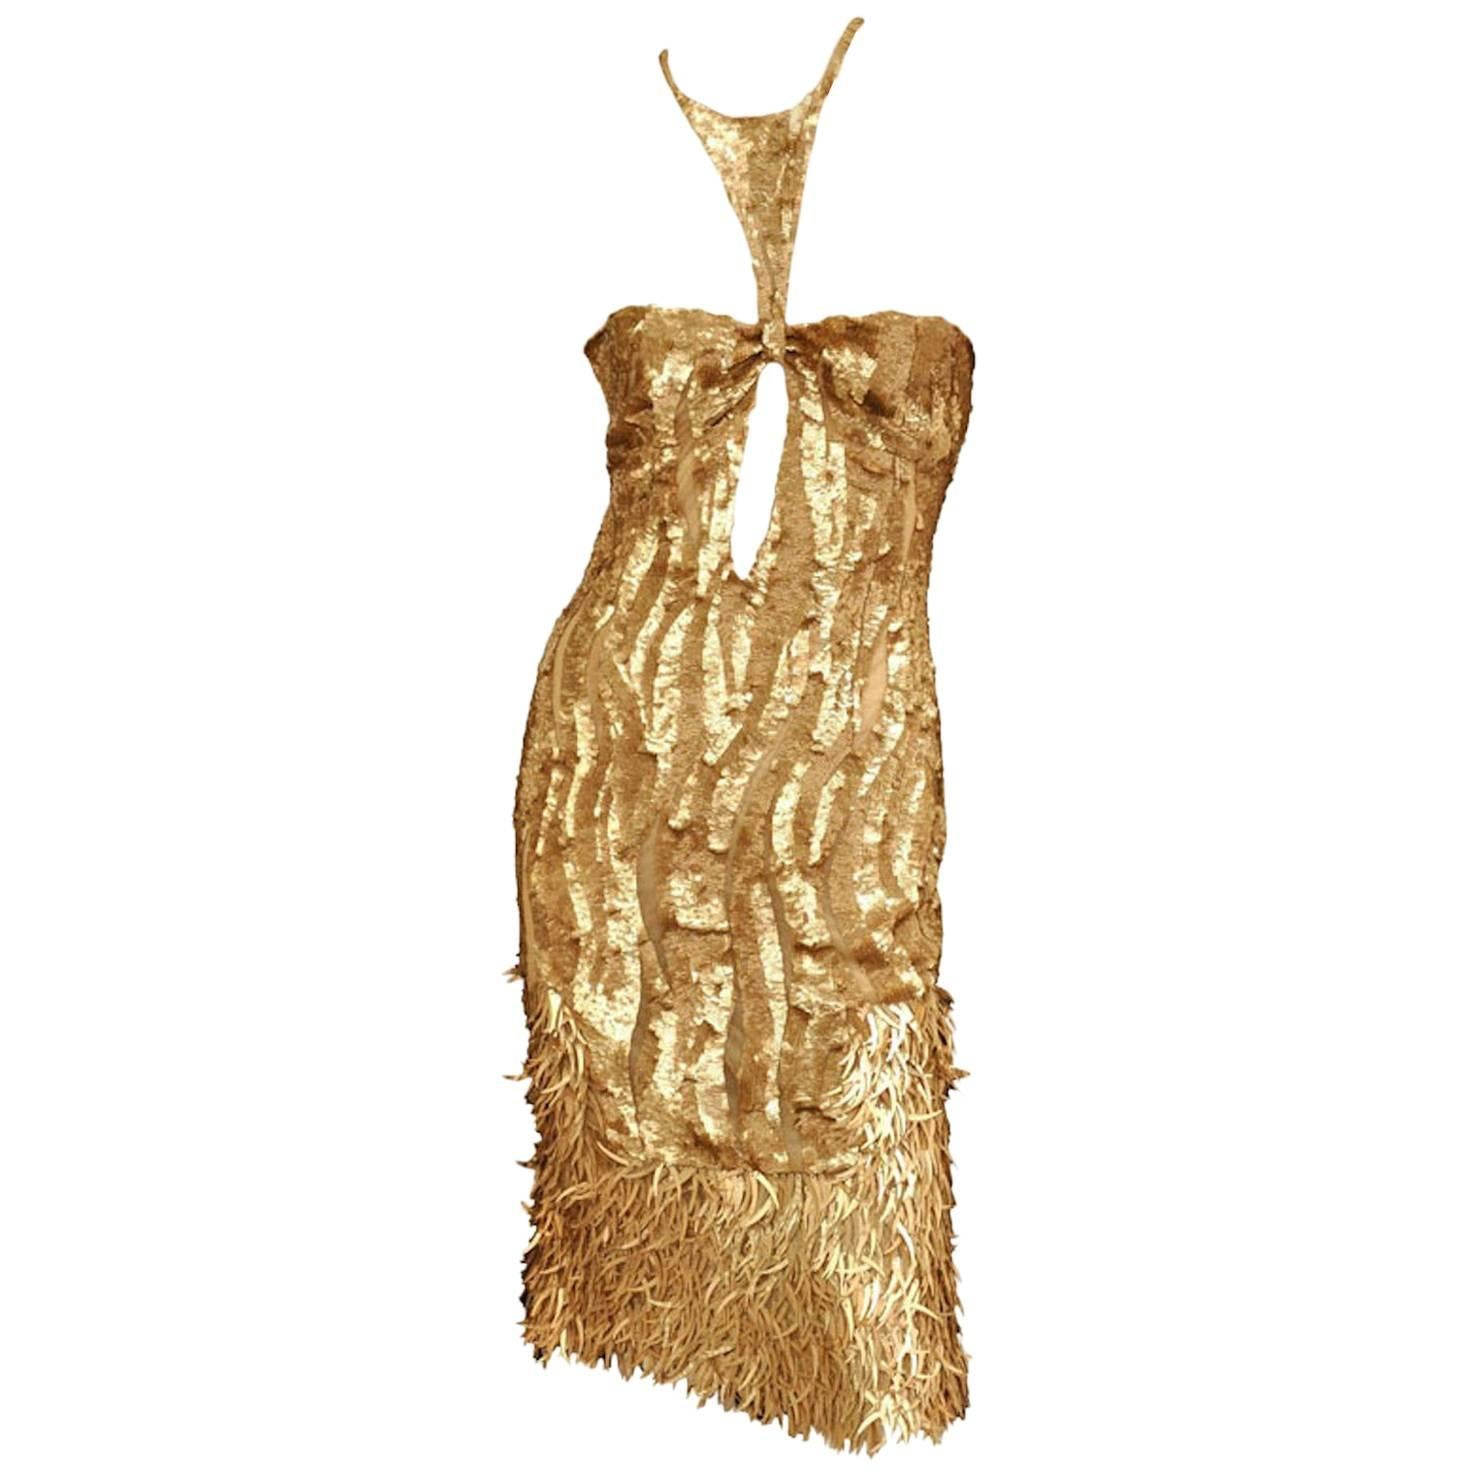 New Tom Ford for Gucci 2004 Collection Gold Embellished Cocktail Dress It. 42